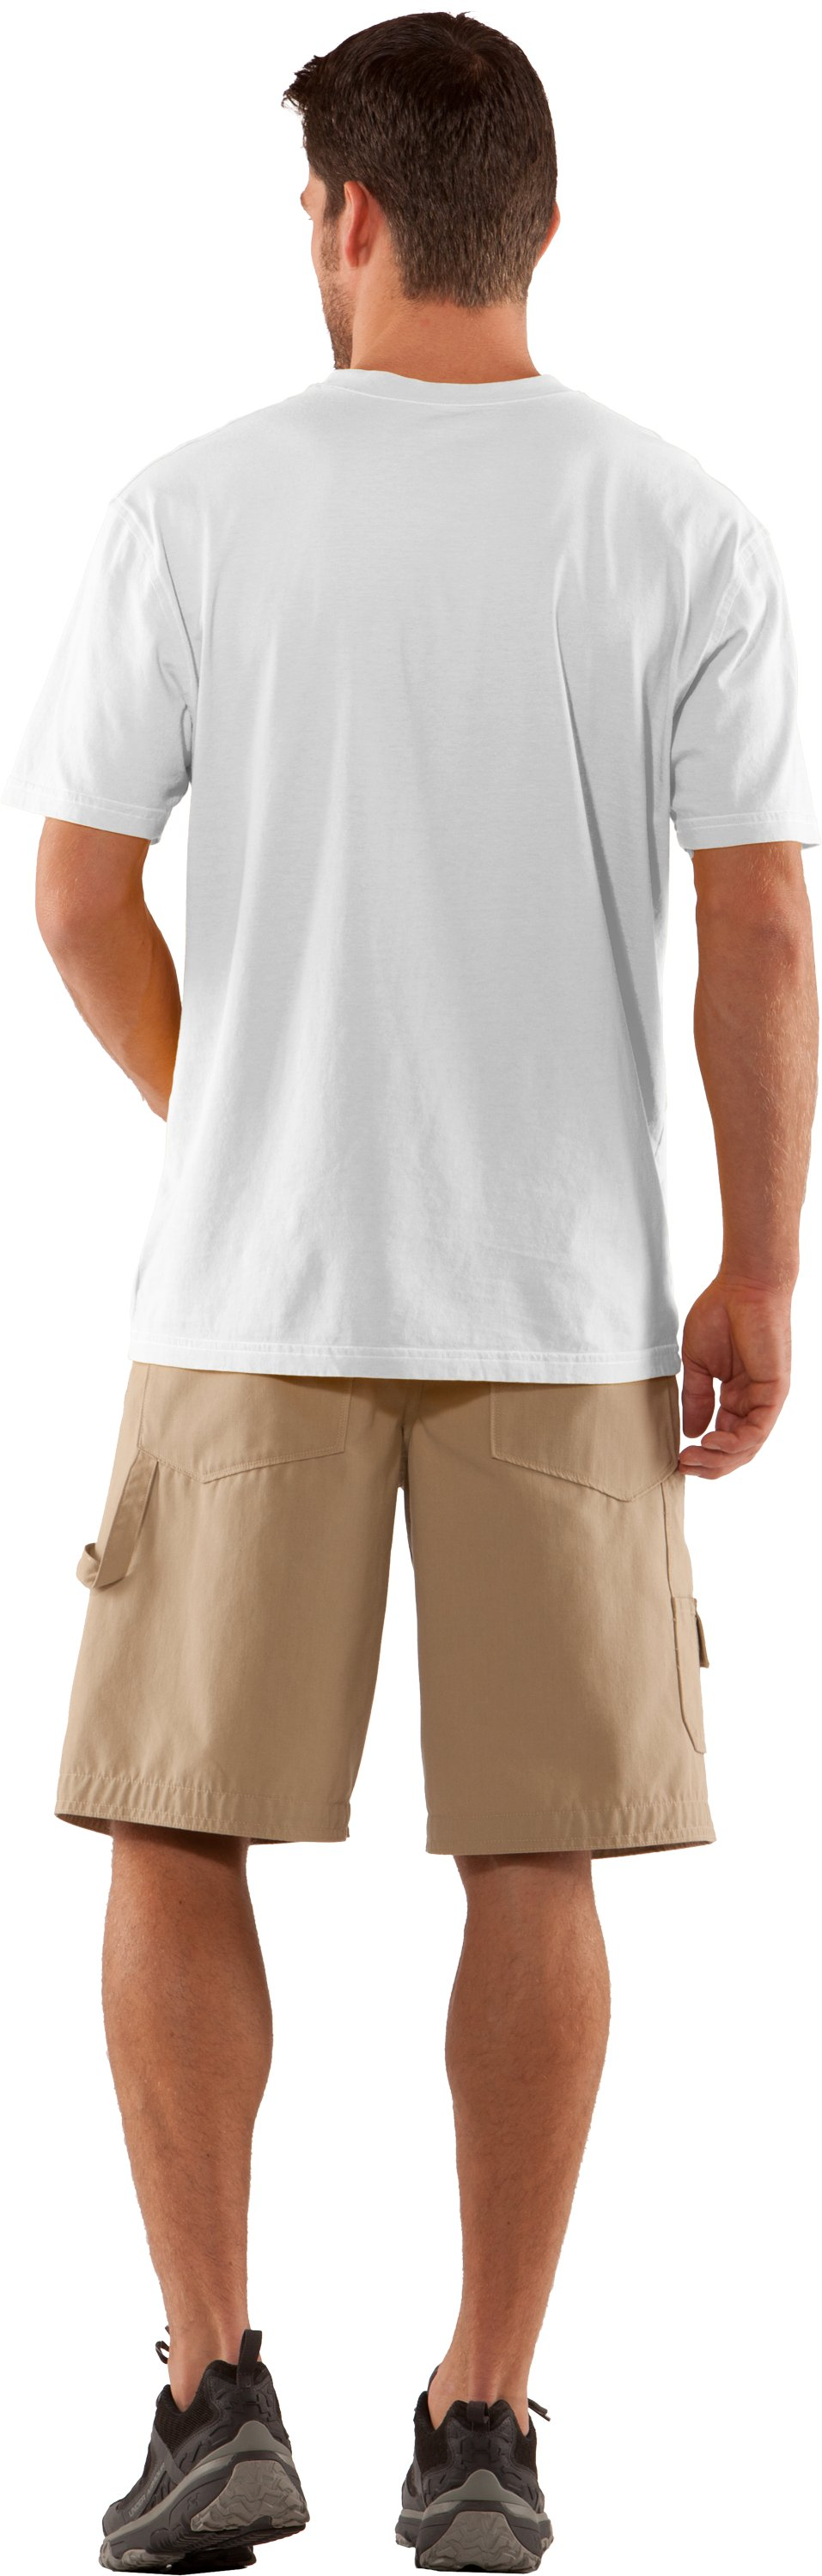 Men's Charged Cotton® Pocket T-Shirt, White, Back